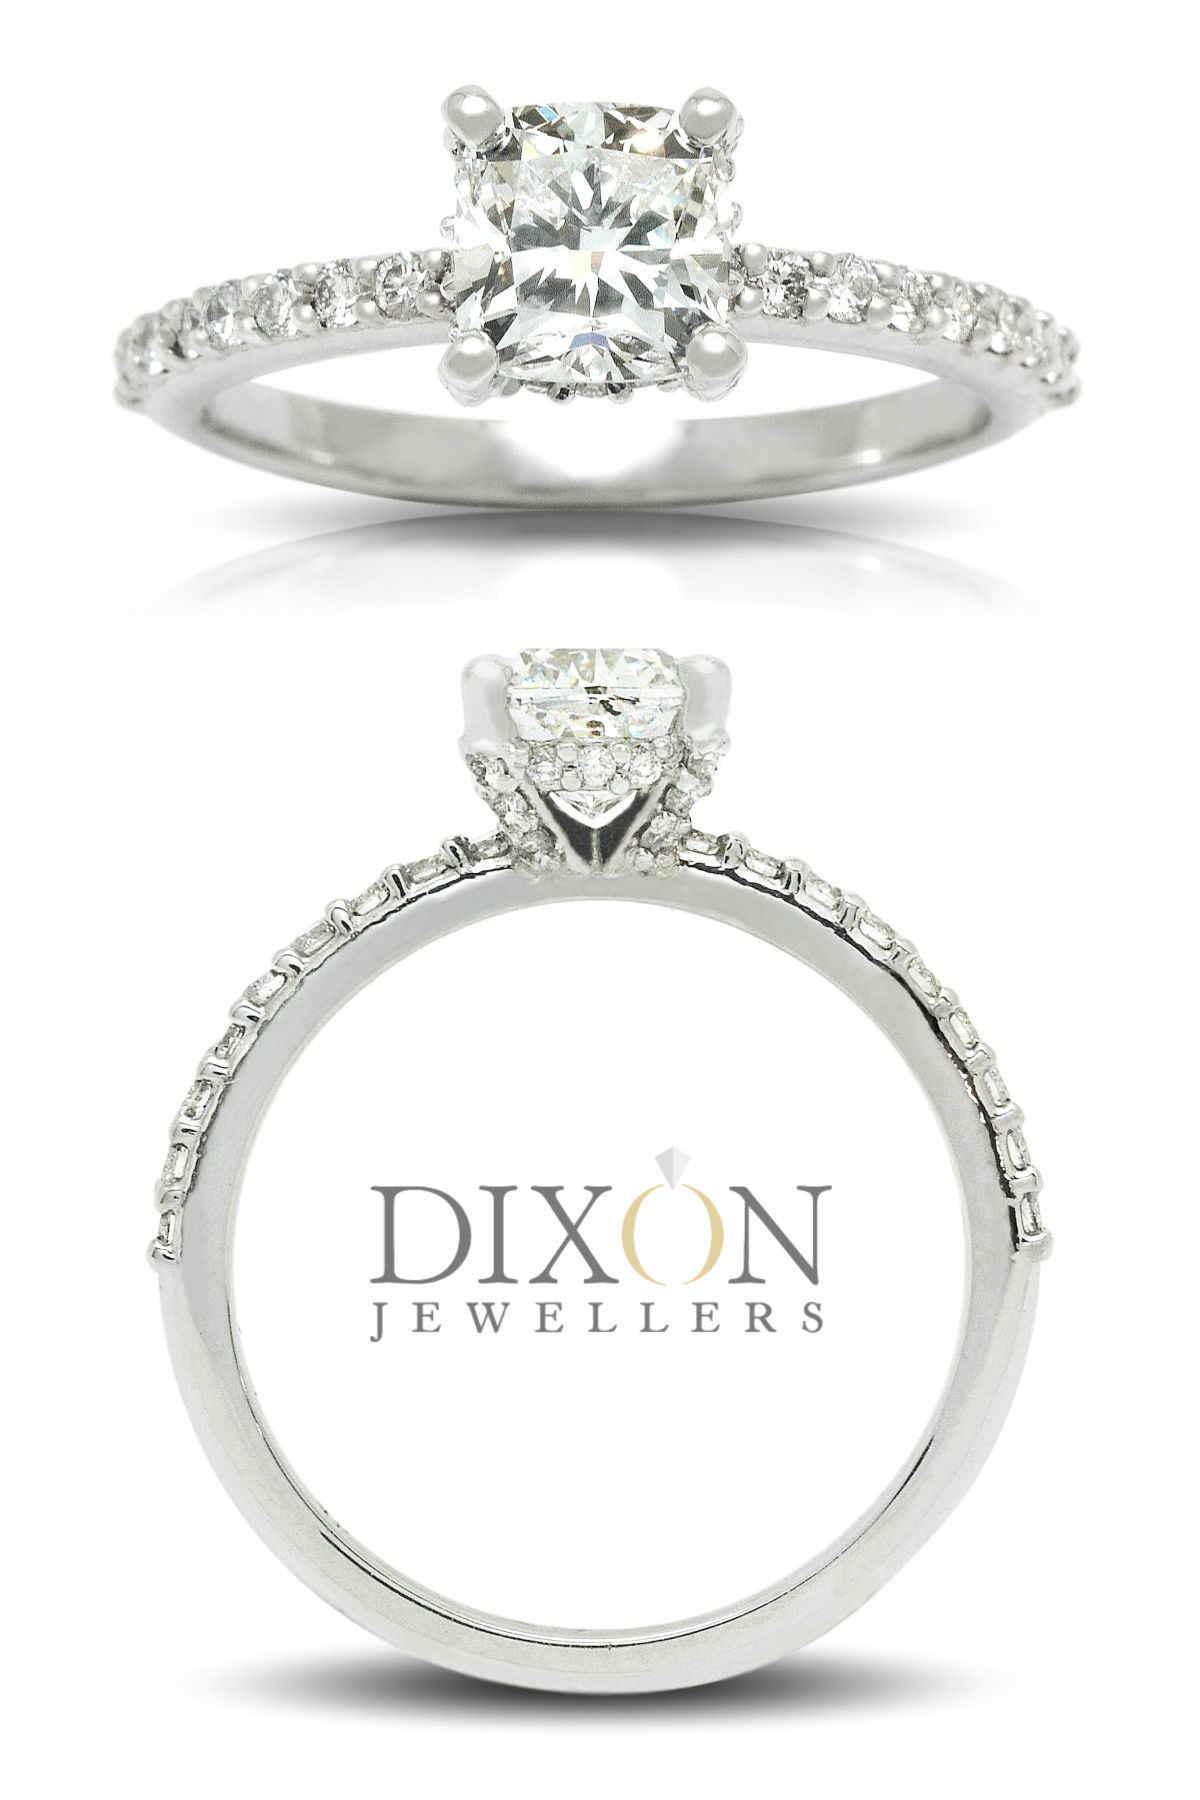 Cushion Cut Engagement Ring with Diamond Encrusted Setting